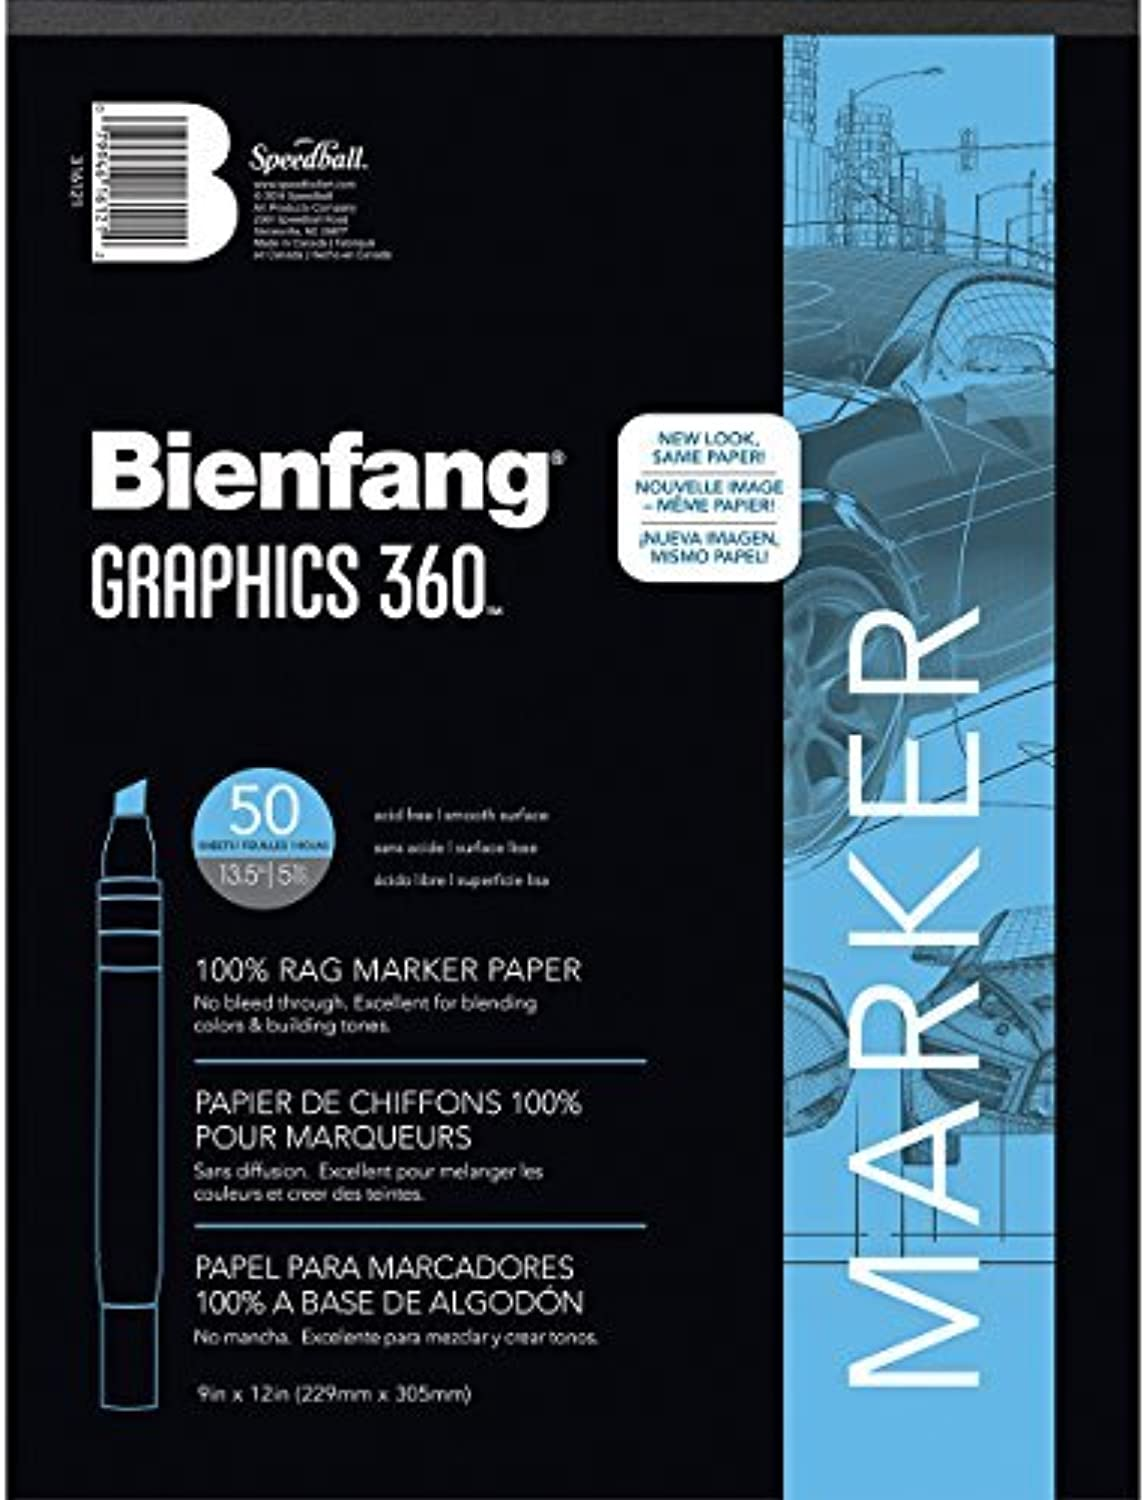 Speedball Art Products Products Products Bienfang Graphics 360 Marker Paper Pad 9-inch x 12-inch, 50 Sheets by Speedball Art Products B01MYLK78T   Zart  737c21